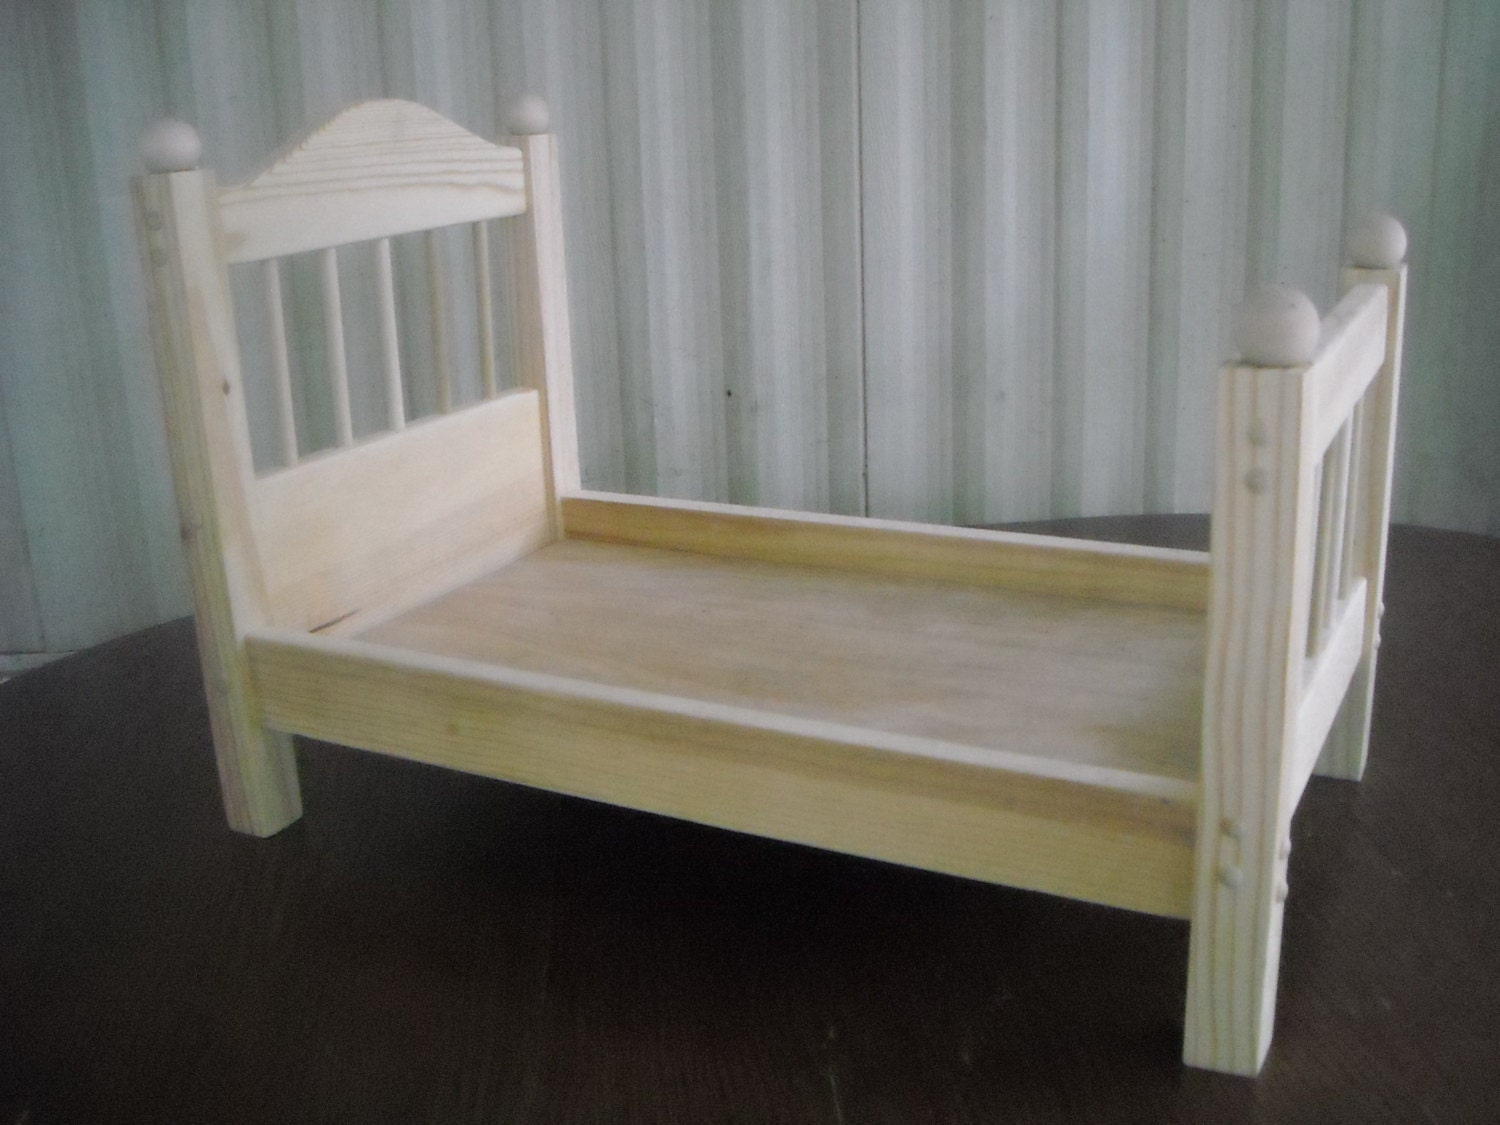 Marvelous photograph of Handmade Spindle Doll Bed for 18 inch doll by admwoodcrafts with #7D704D color and 1500x1125 pixels